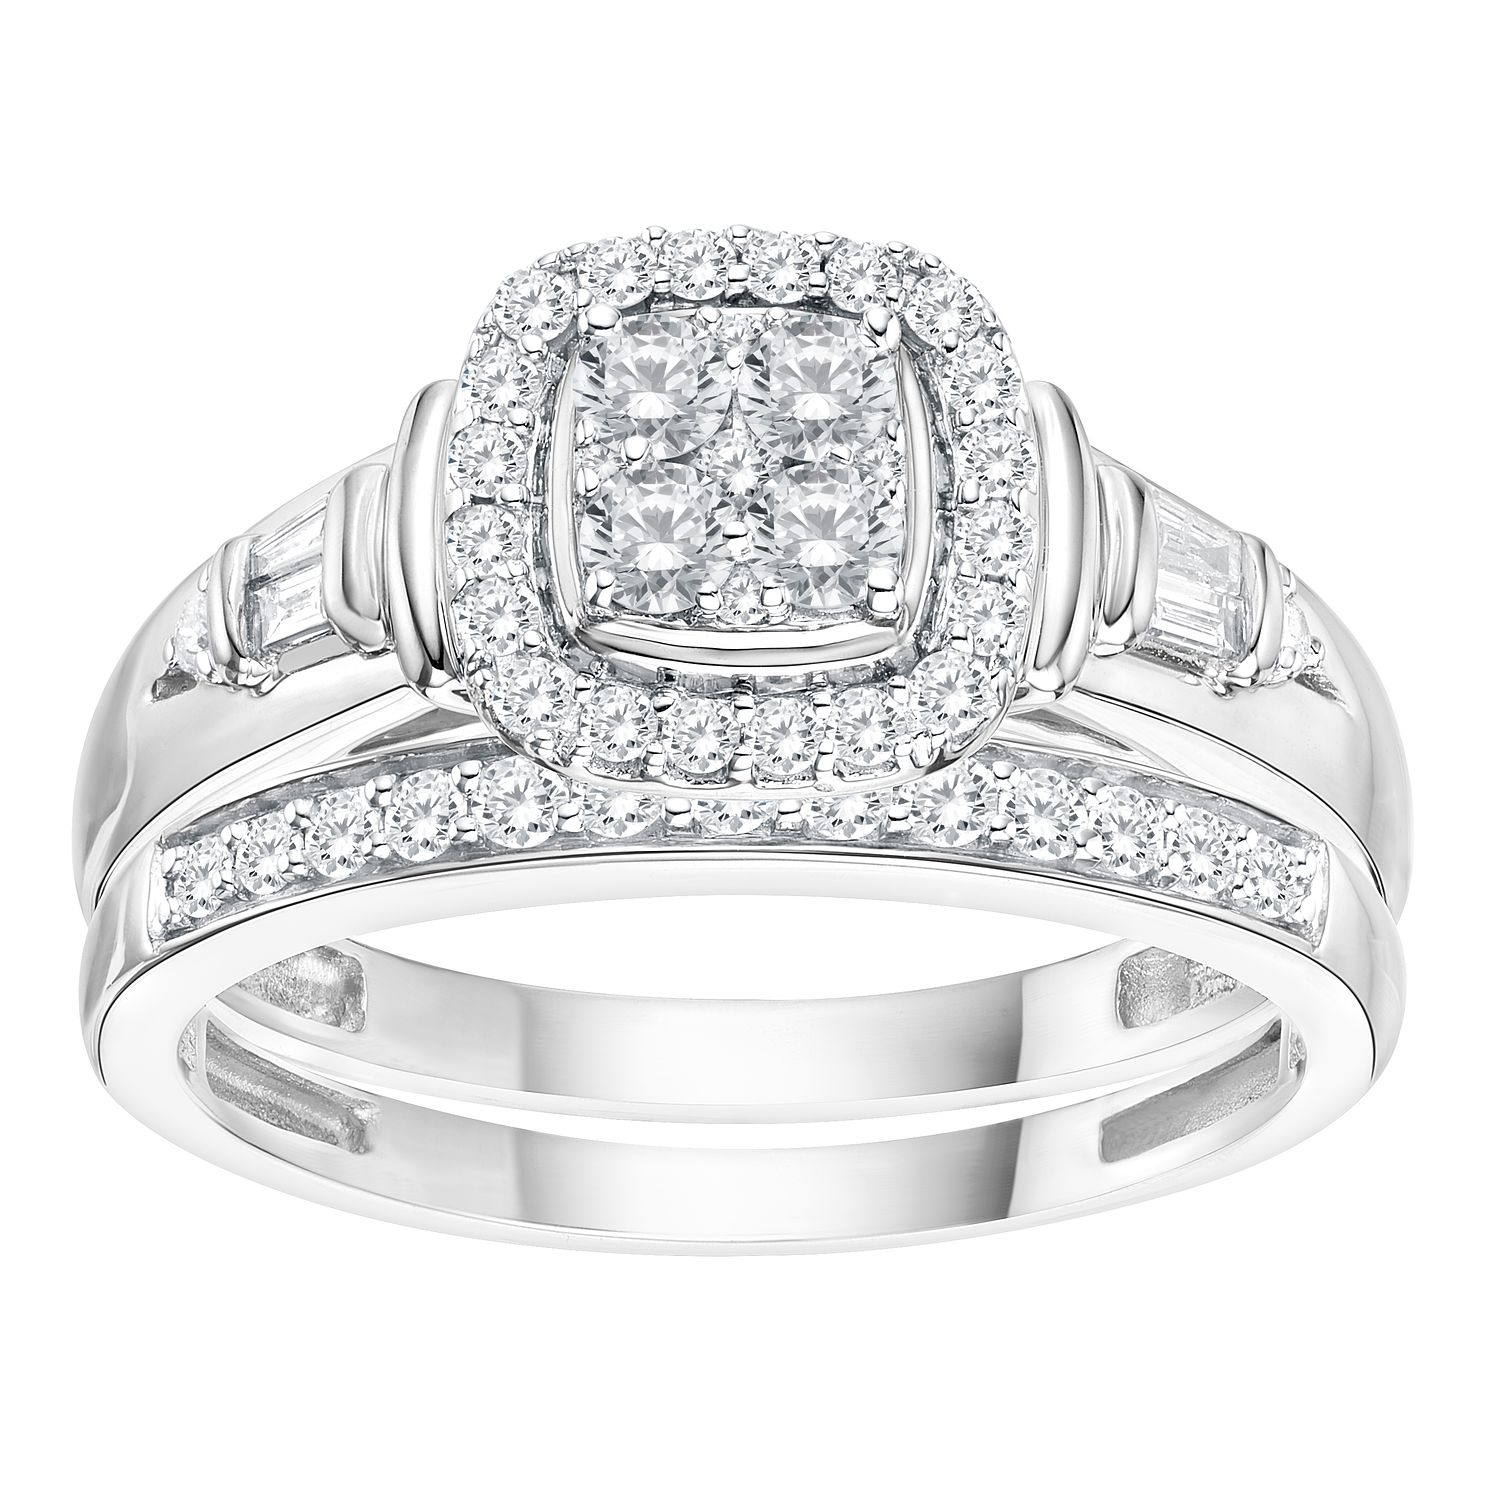 je from bands aime wedding platinum band for her t and sets his